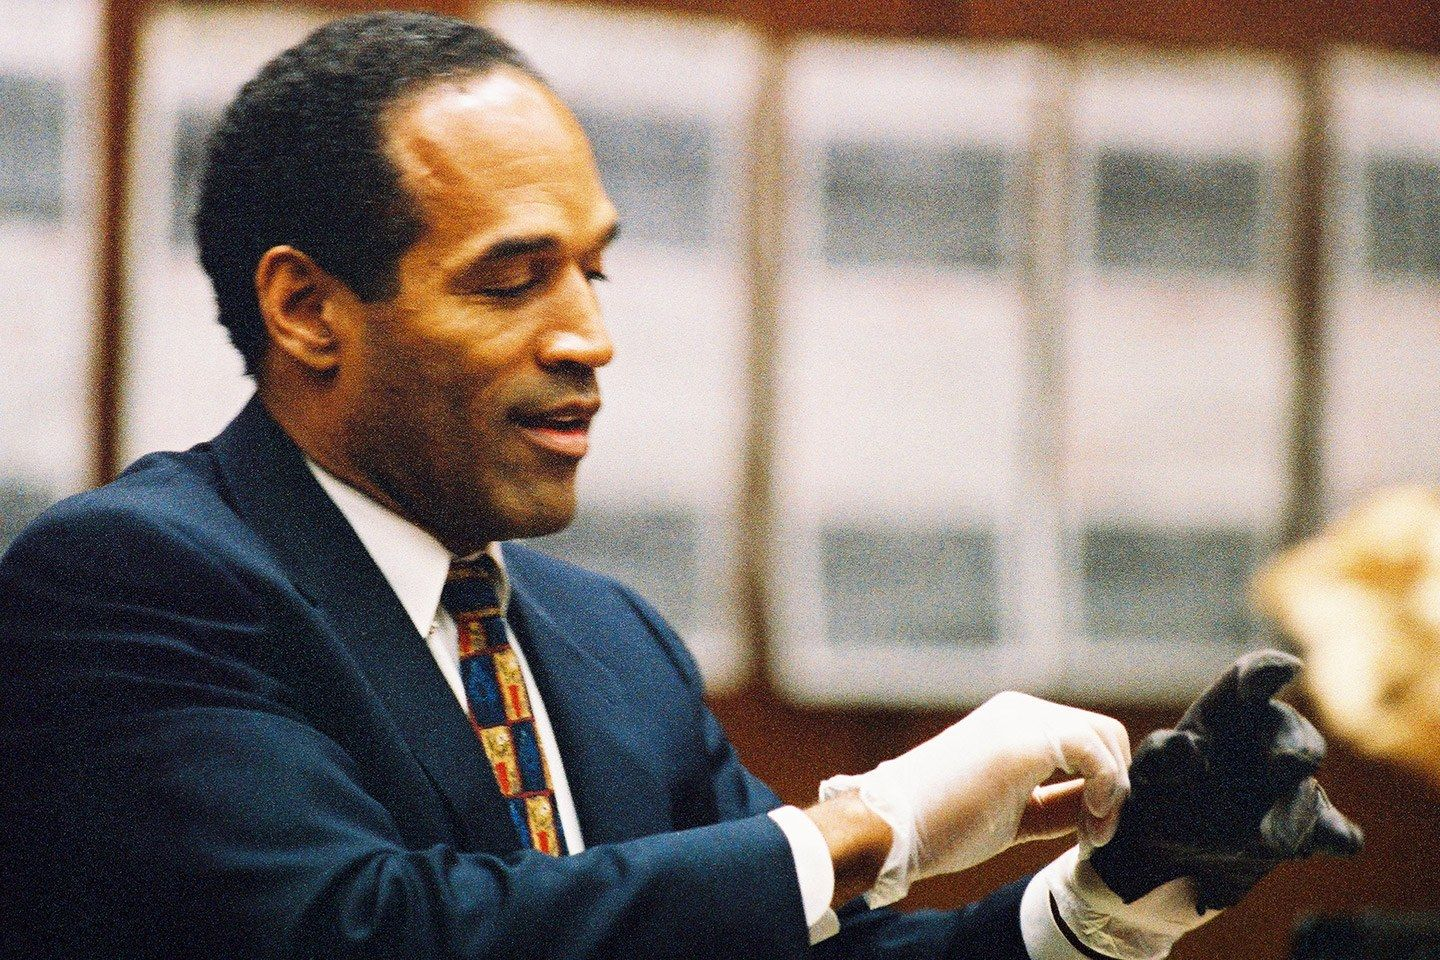 oj simpson found not guilty of murder On july 22, 1994, former football hero oj simpson pleaded 100% not guilty to the double murder charge he faced for the brutal deaths of his ex-wife nicole brown simpson and her friend ronald simpson was accused of killing both brown simpson and goldman on the night of june 12, 1994.